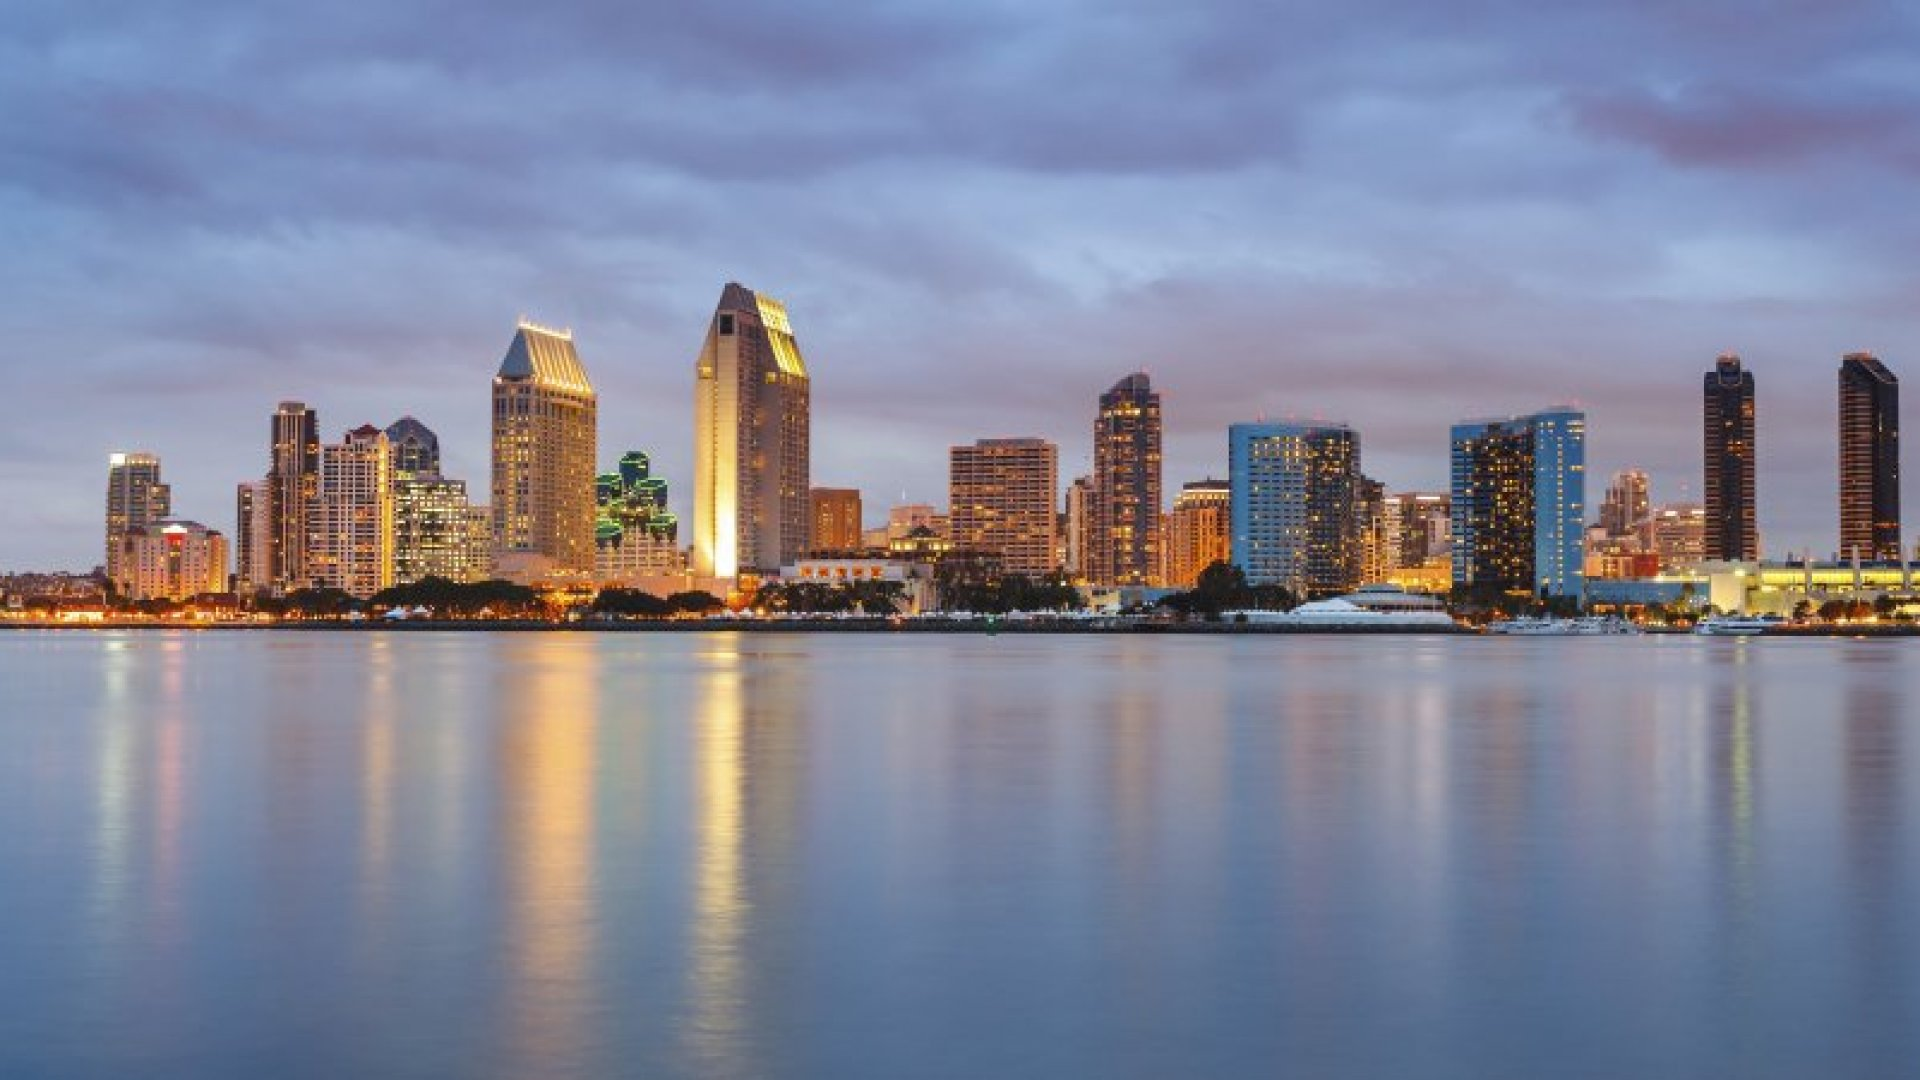 See Why These Entrepreneurs Call San Diego 'America's Finest City'